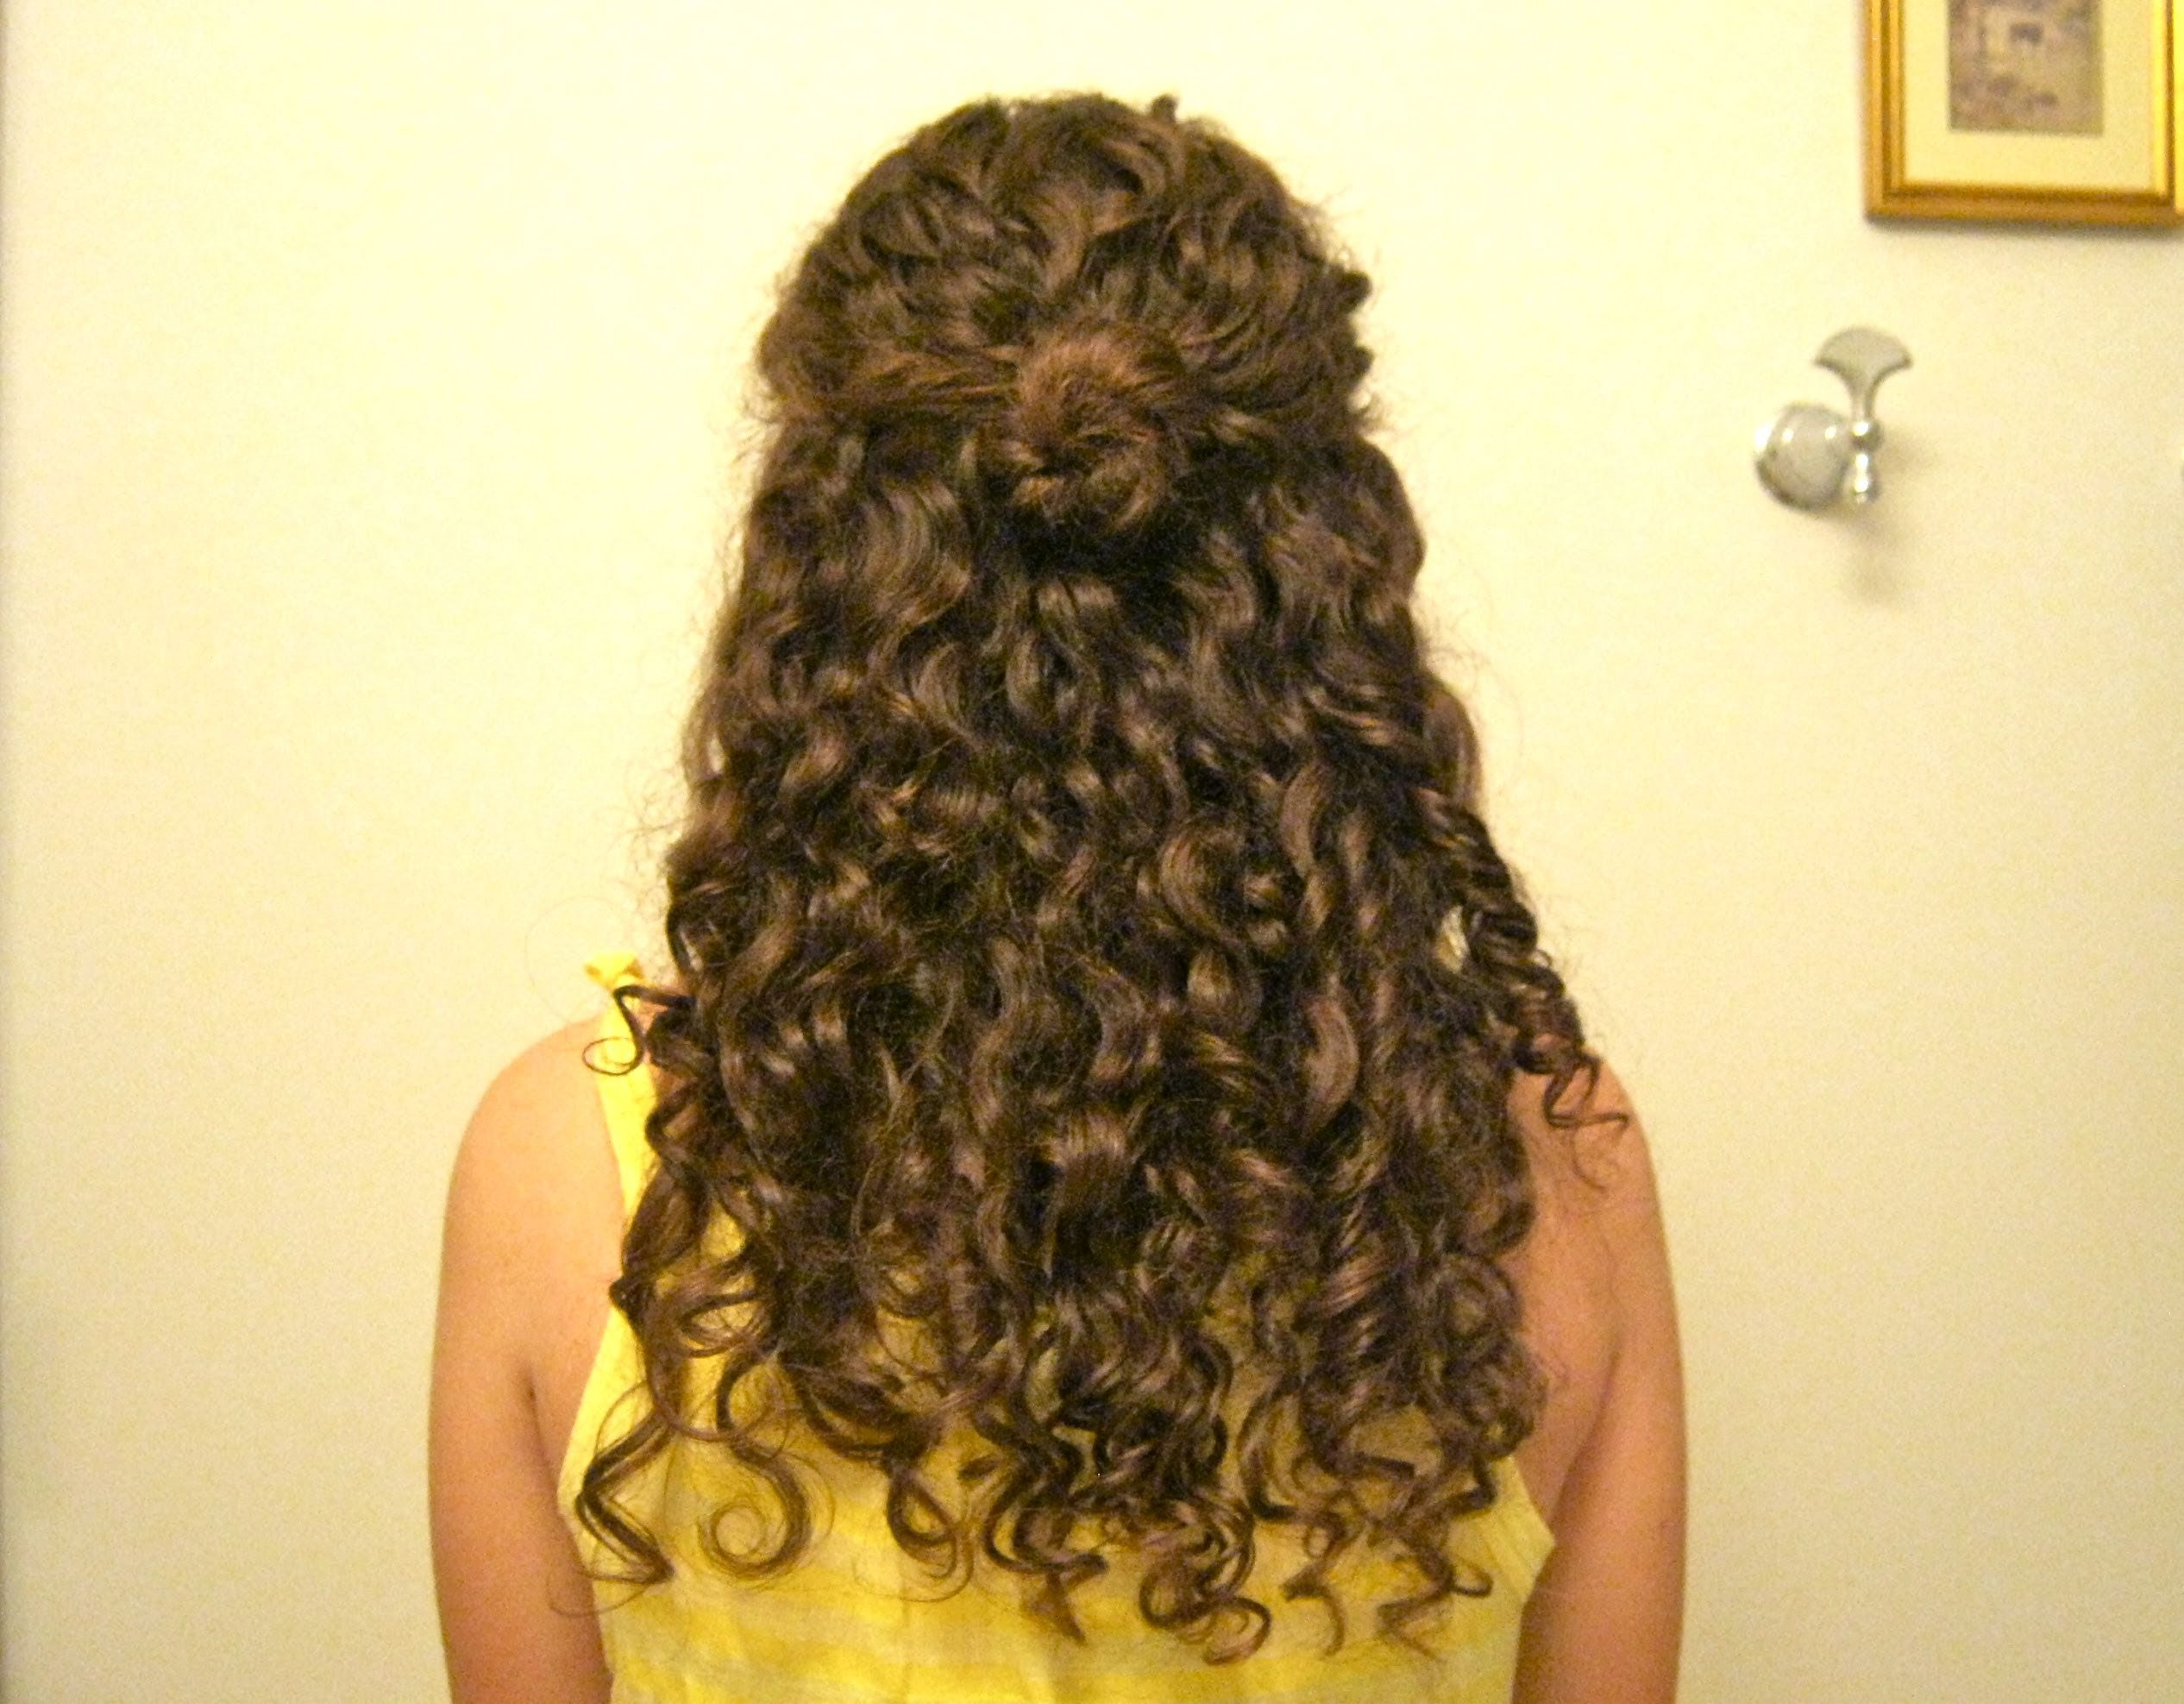 Hairstyles For Curly Hair Half Up Curly Hairstyles Hairstylesforcurlyhair Curly Hair Styles Curly Natural Curls Curly Hair Styles Naturally